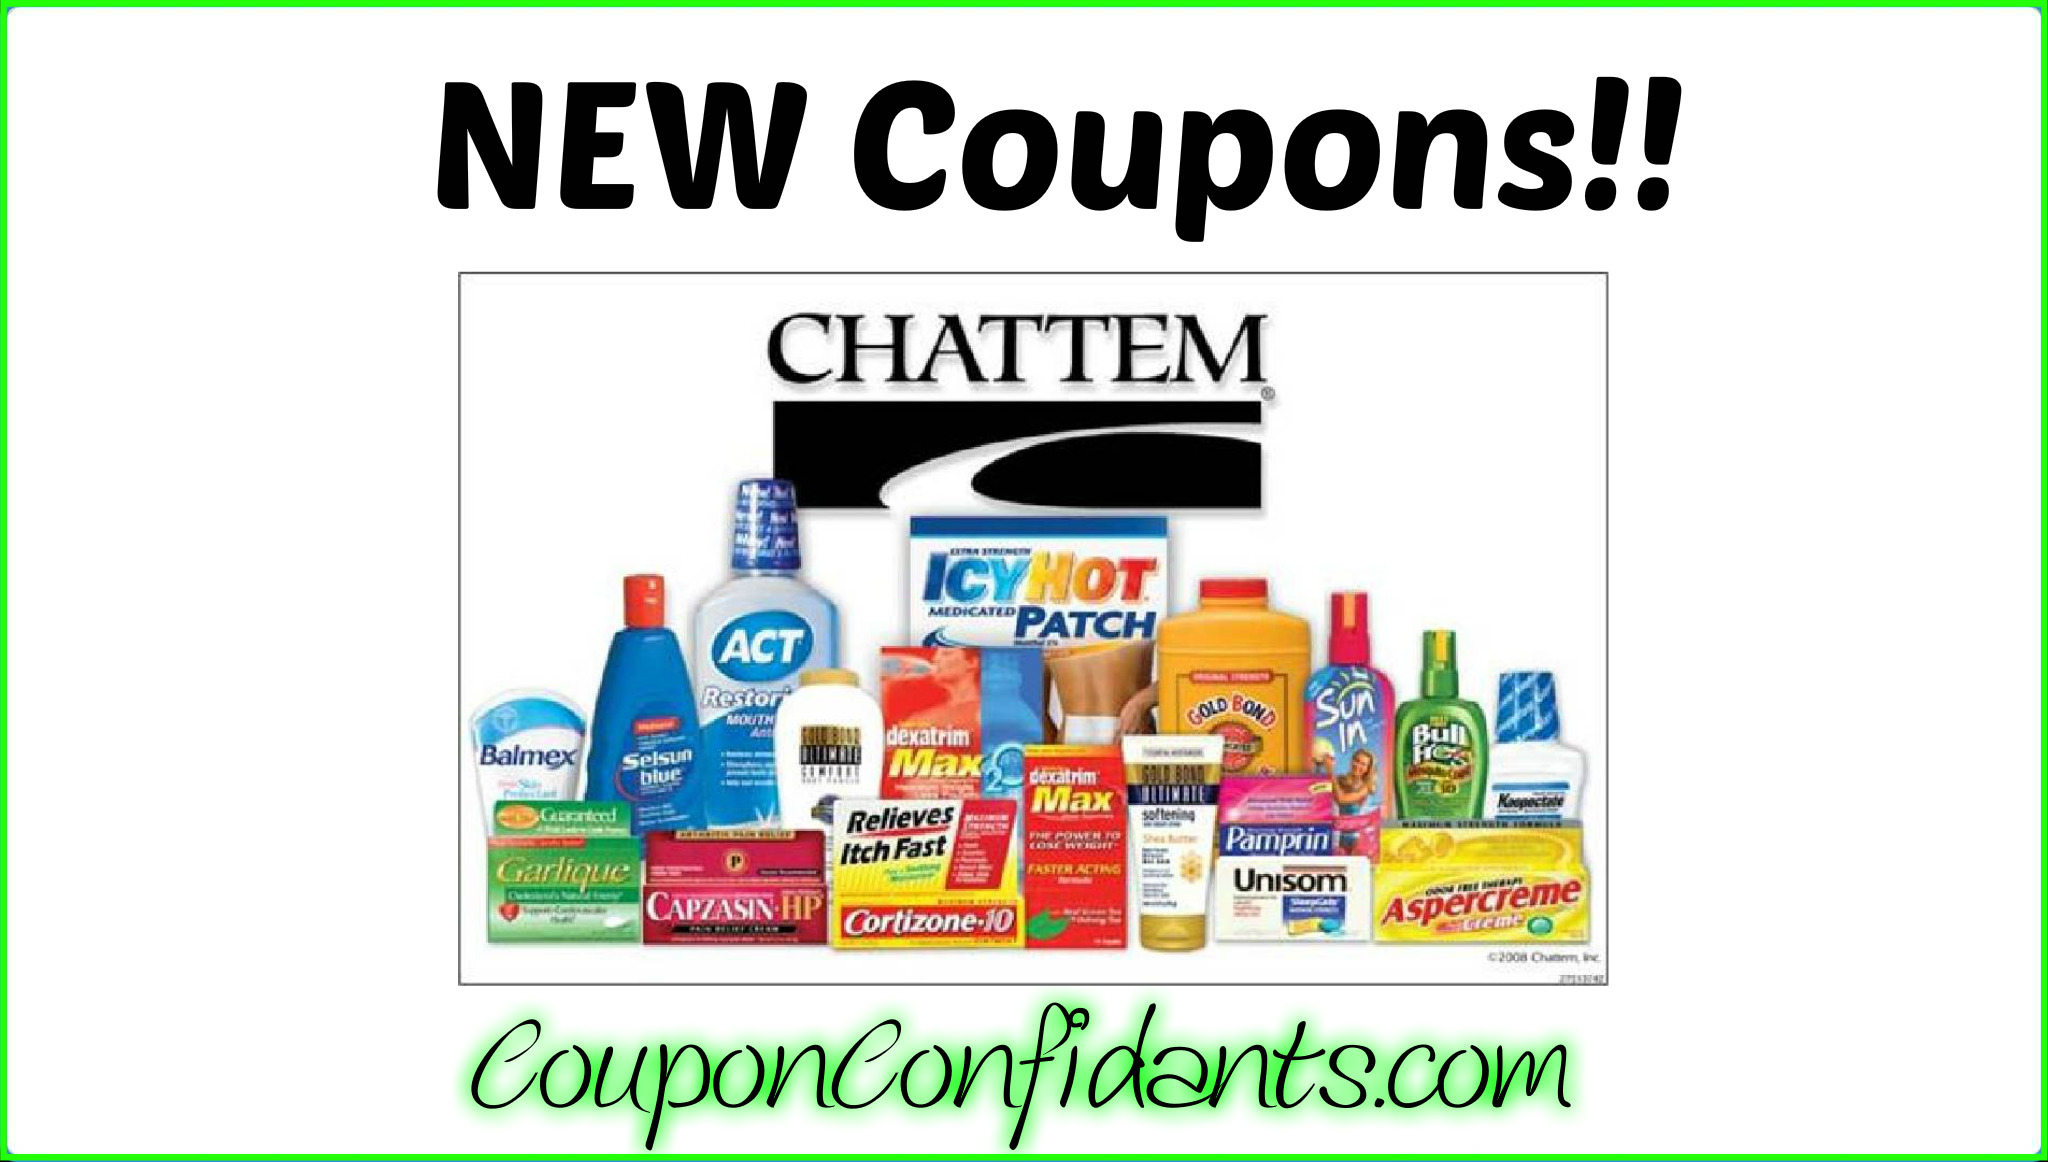 photograph relating to Icy Hot Coupons Printable known as Contemporary Chattem Makers significant worth discount codes!!! ⋆ Coupon Confidants